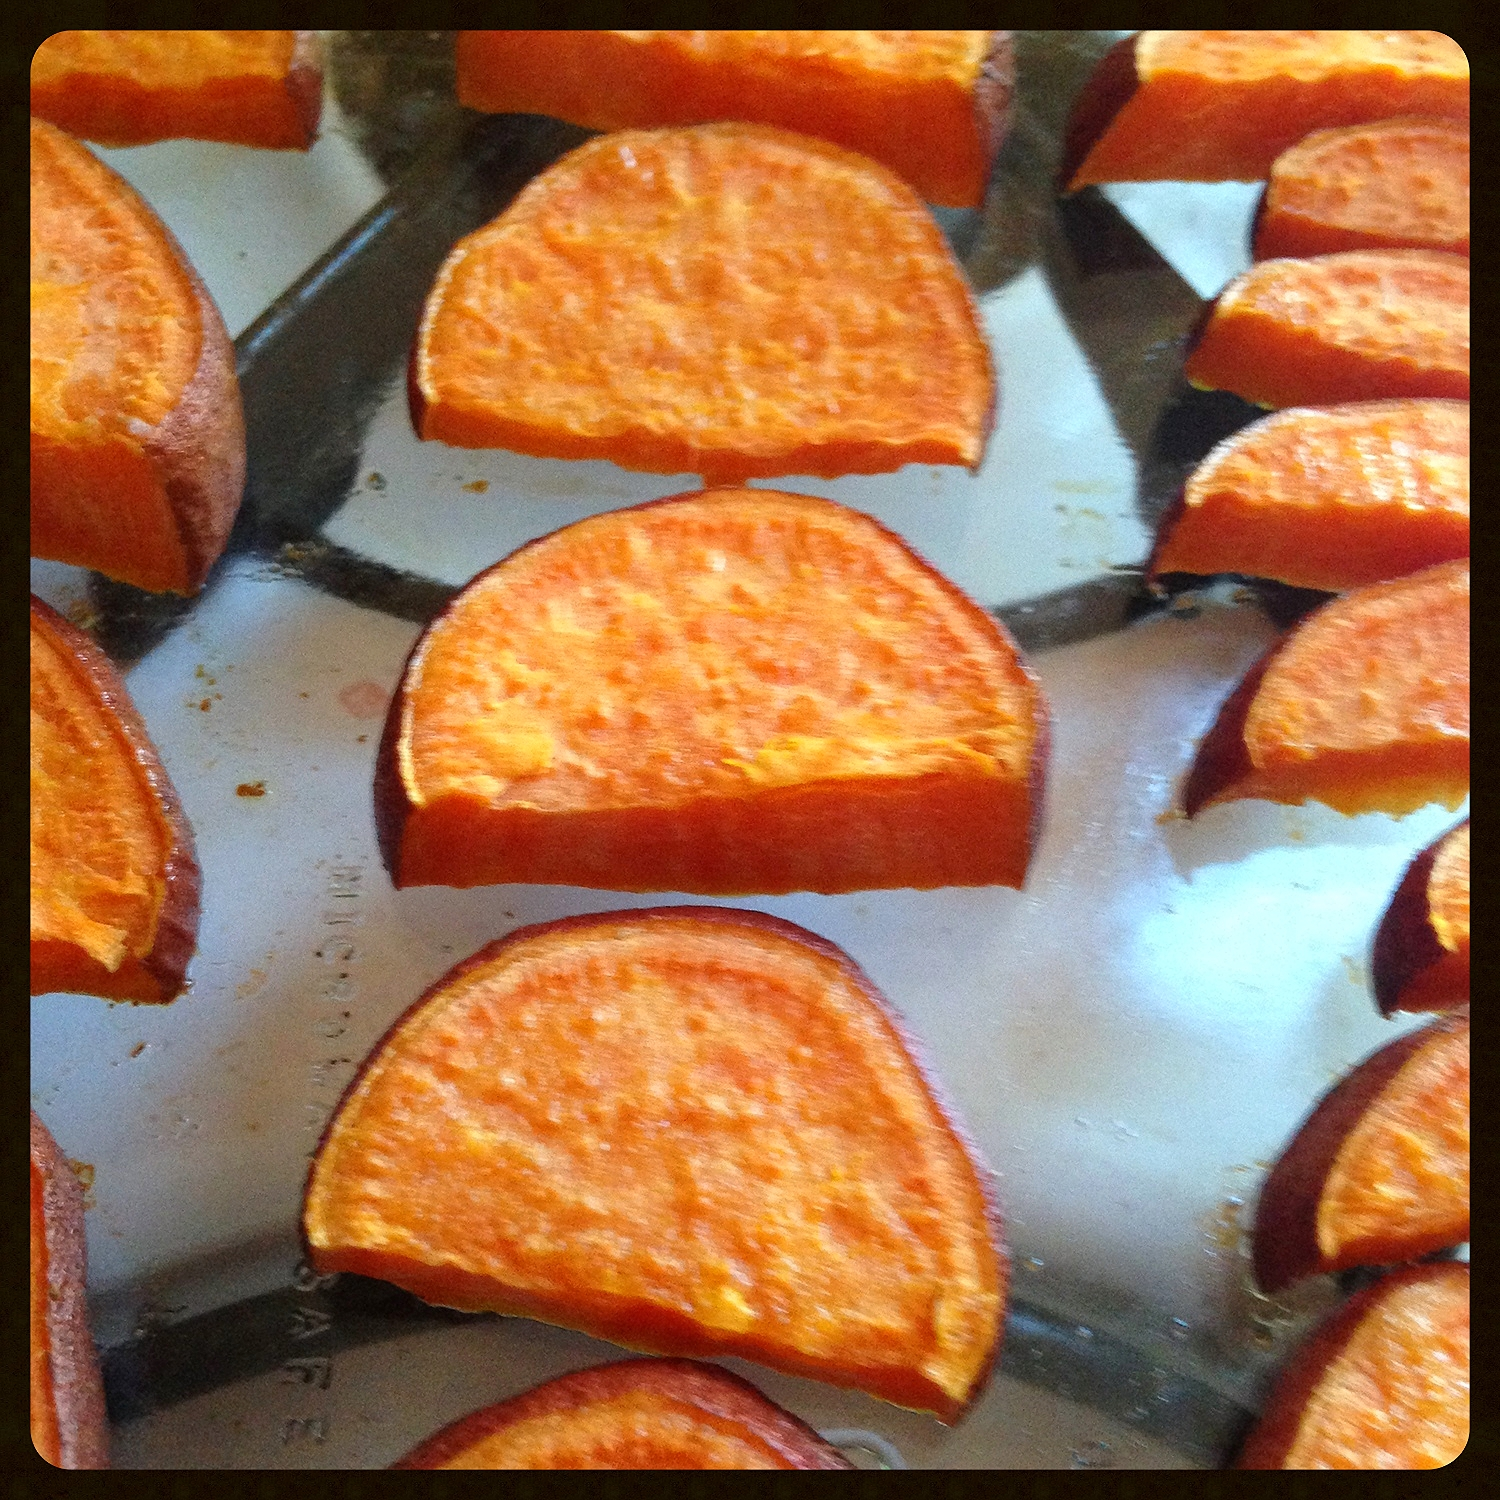 Cooked Half-Moon Shaped Yams